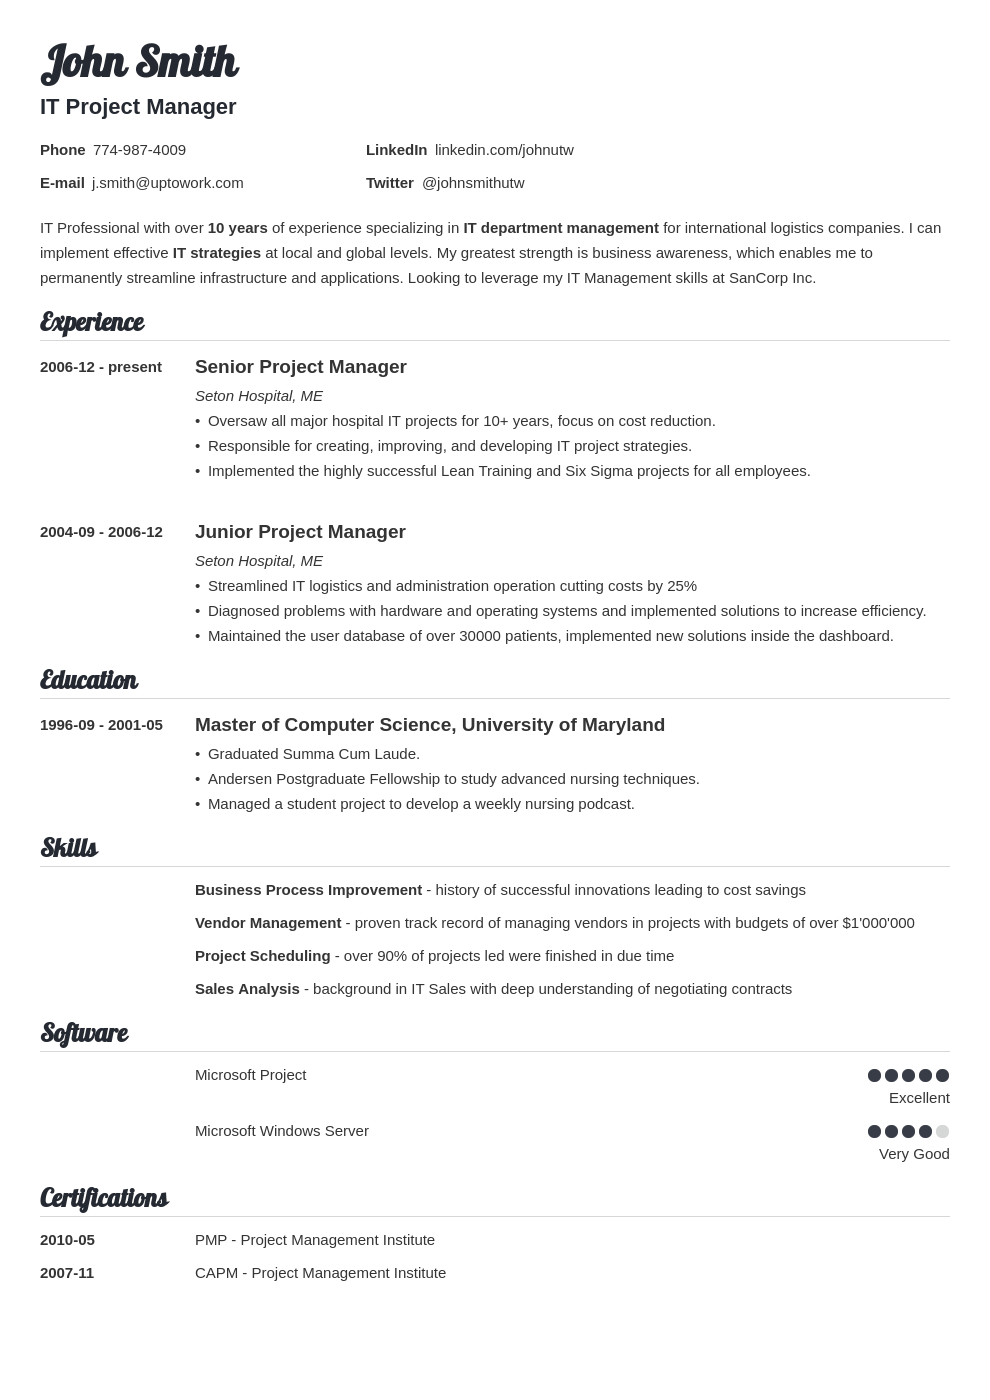 Captivating Professional Resume Template Valera Within Download Resume